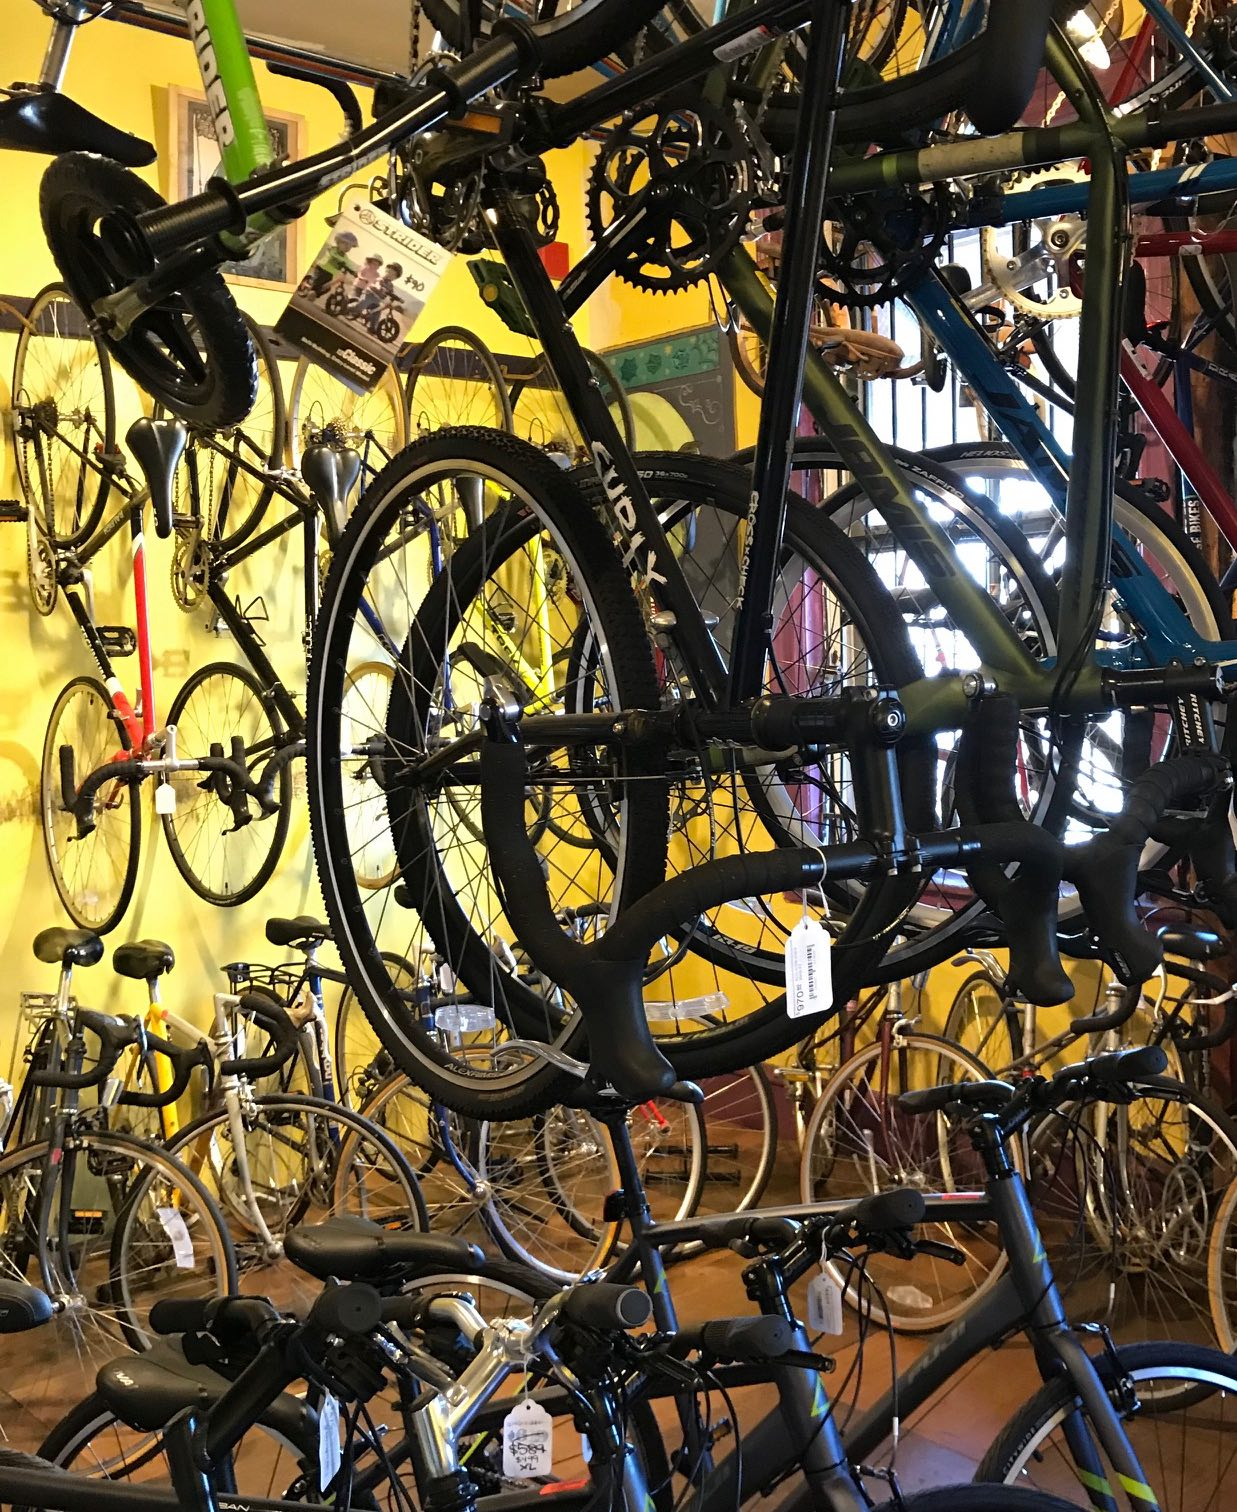 2250148a3cc 8 Bike Shops in Philadelphia Where You Can Buy Gear, Get Repairs, and Take  Classes